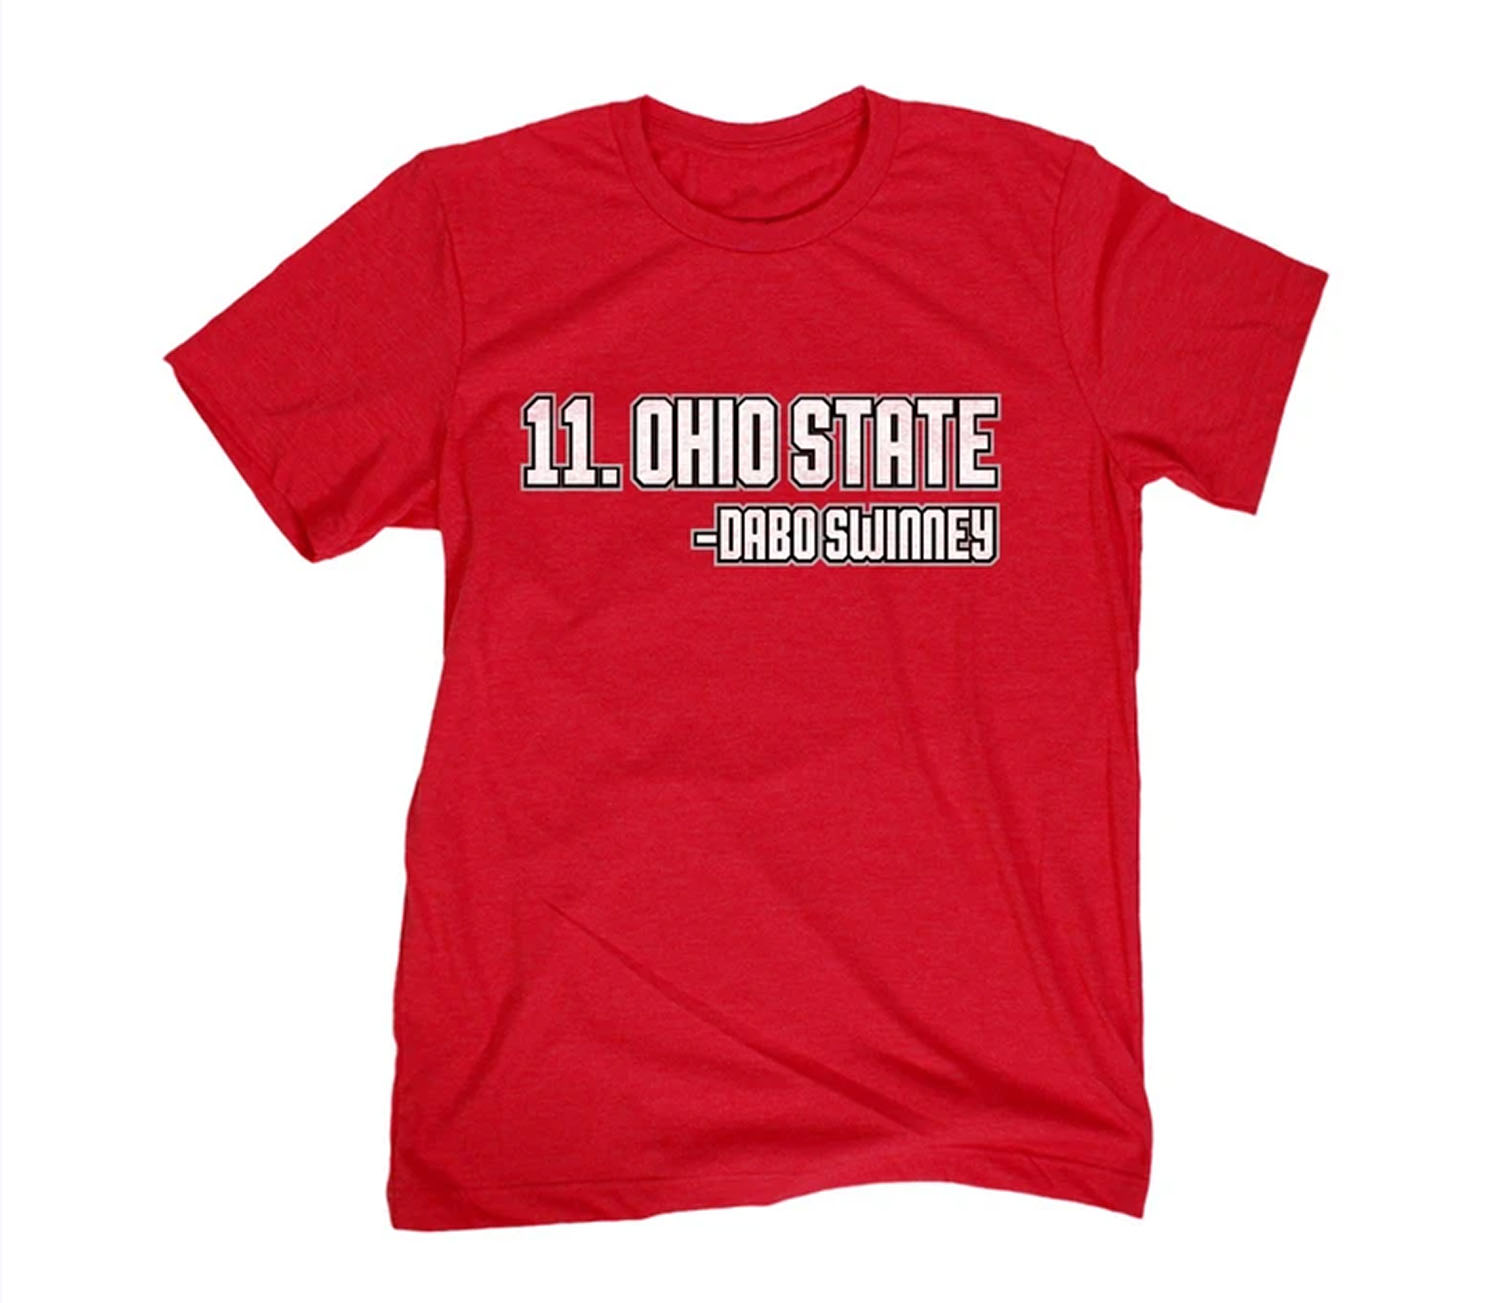 #11 OHIO STATE - DABO SWINNEY RANKED TEE SHIRT